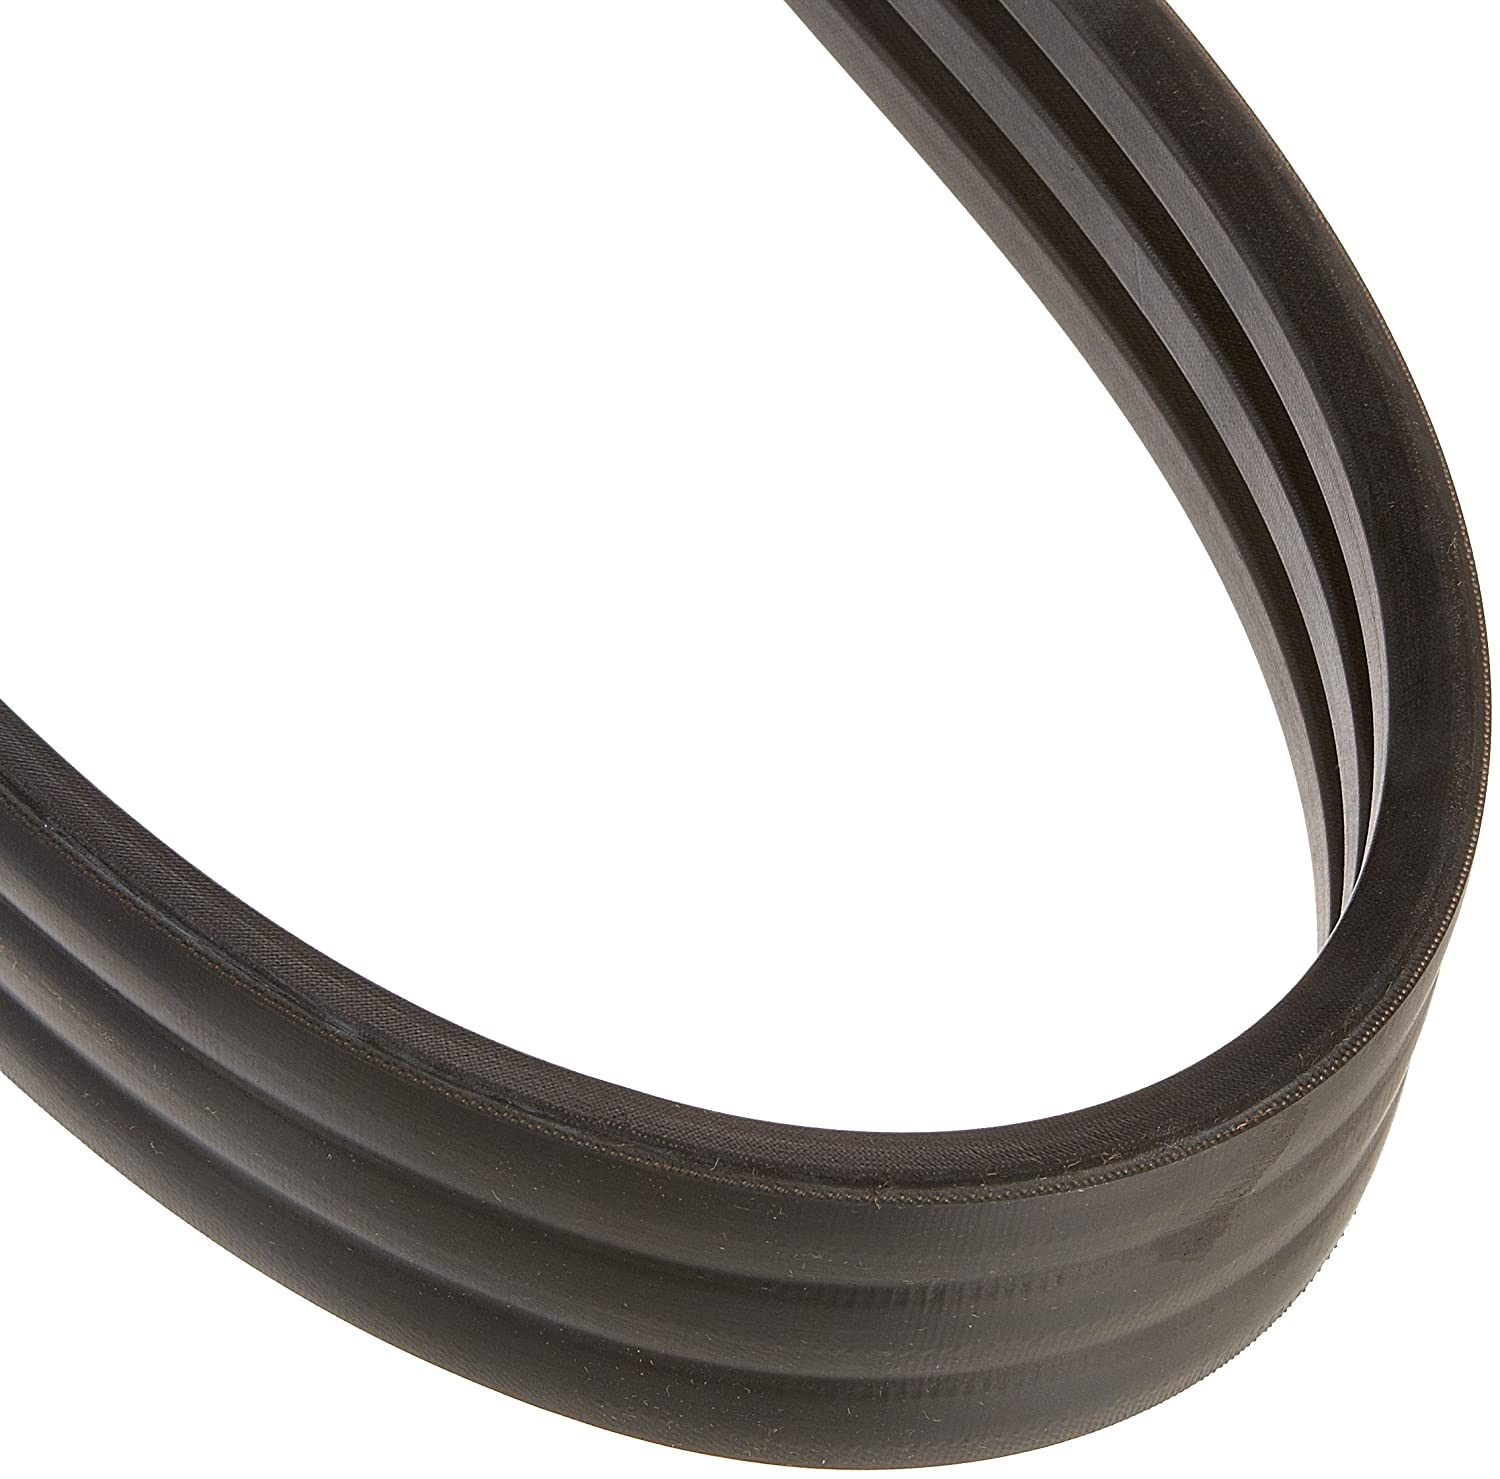 75.0 Belt Outside Circumference Gates 3//B72 Hi-Power II Powerband V-Belt with V-80 Matching Program 13//32 Height 1-31//32 Overall Width B Section